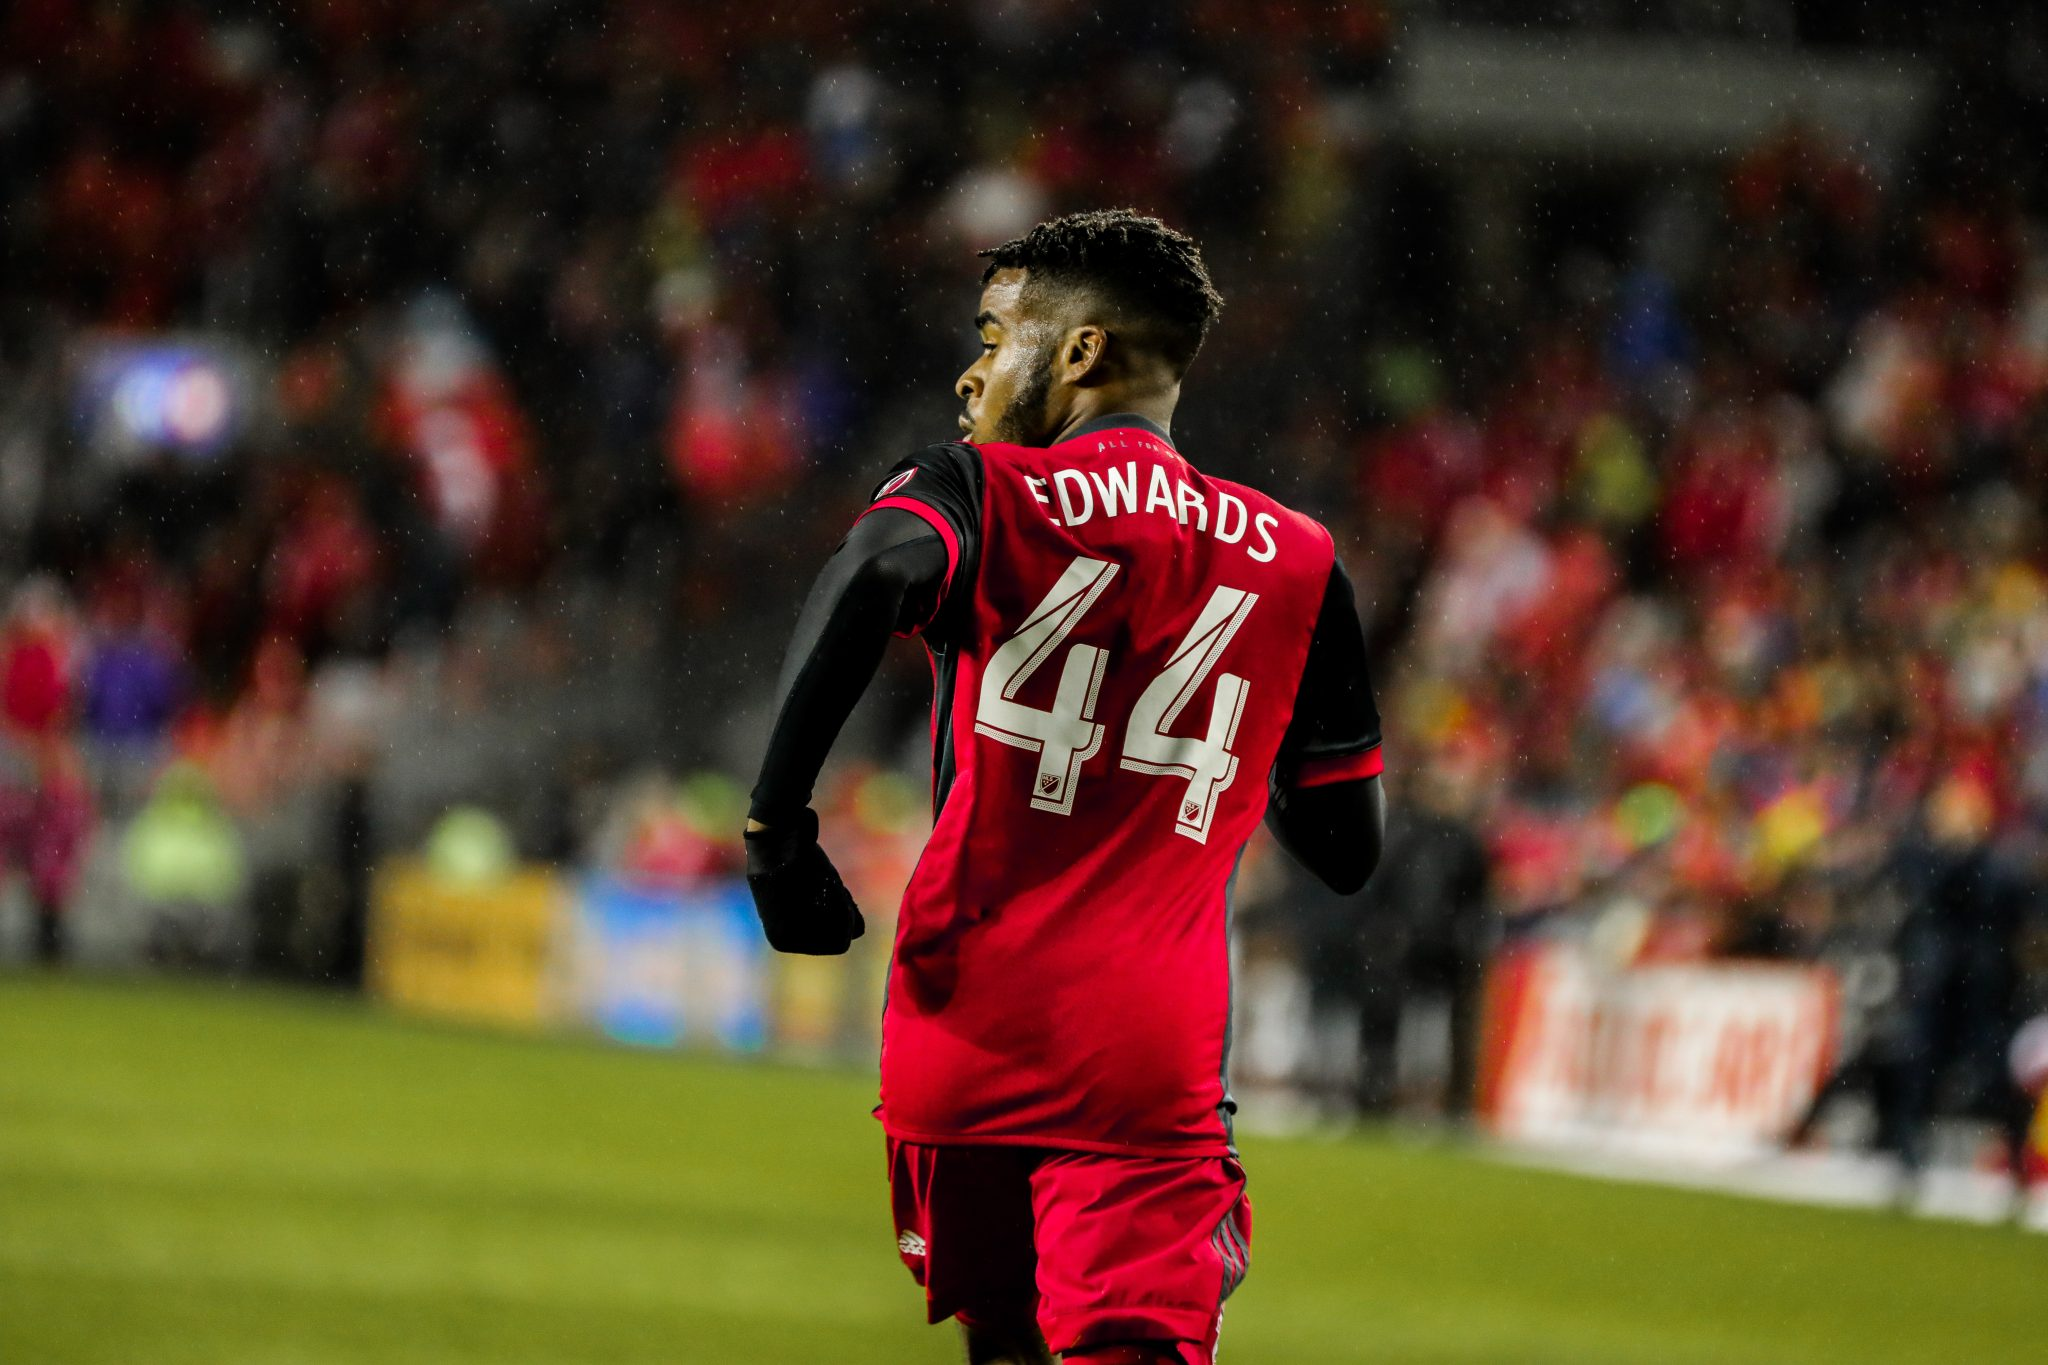 Raheem Edwards makes his MLS debut with Toronto FC at BMO Field. Photo taken by Luke Galati